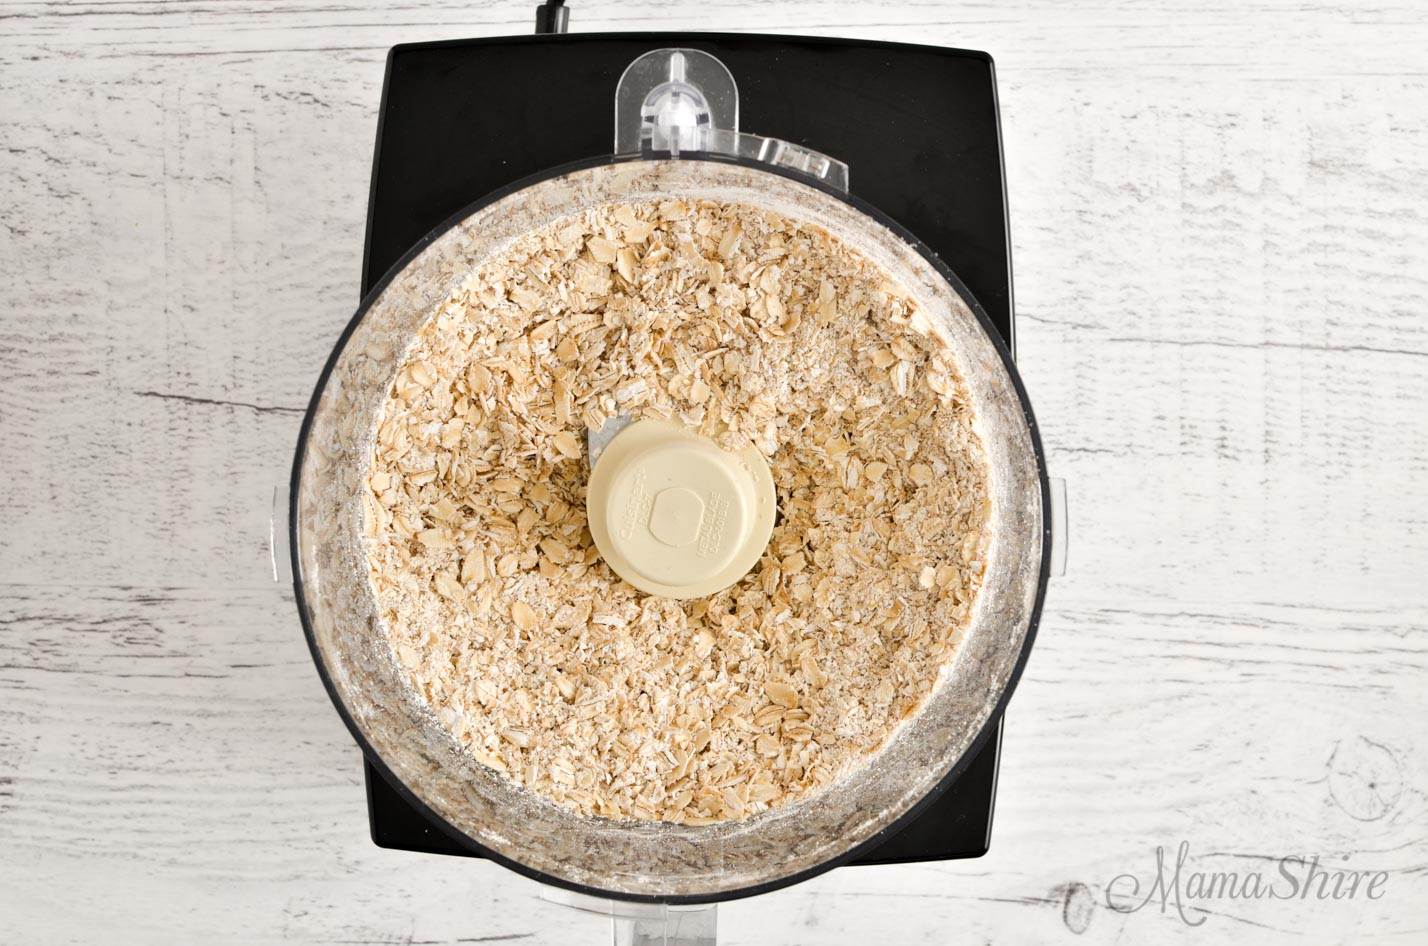 A food processor with quick oats made from pulsing old-fashioned rolled oats.